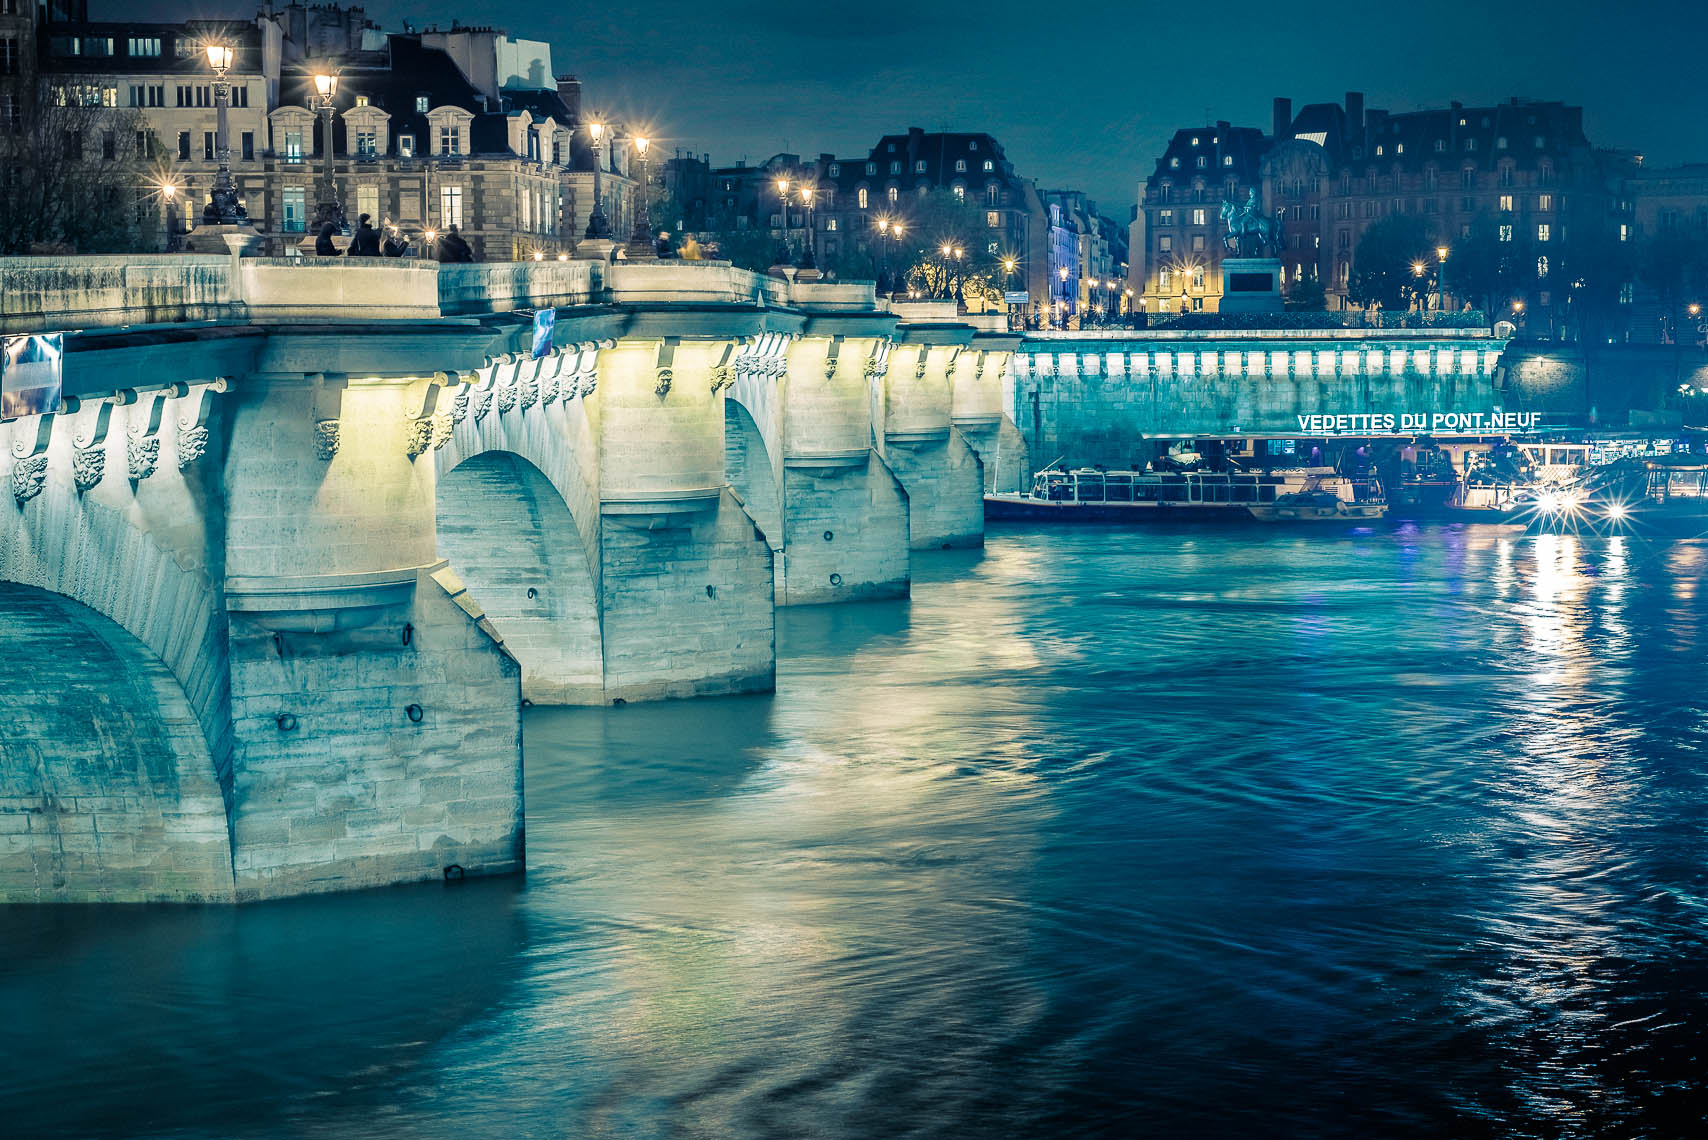 026_Paris by D800_La Seine.jpg